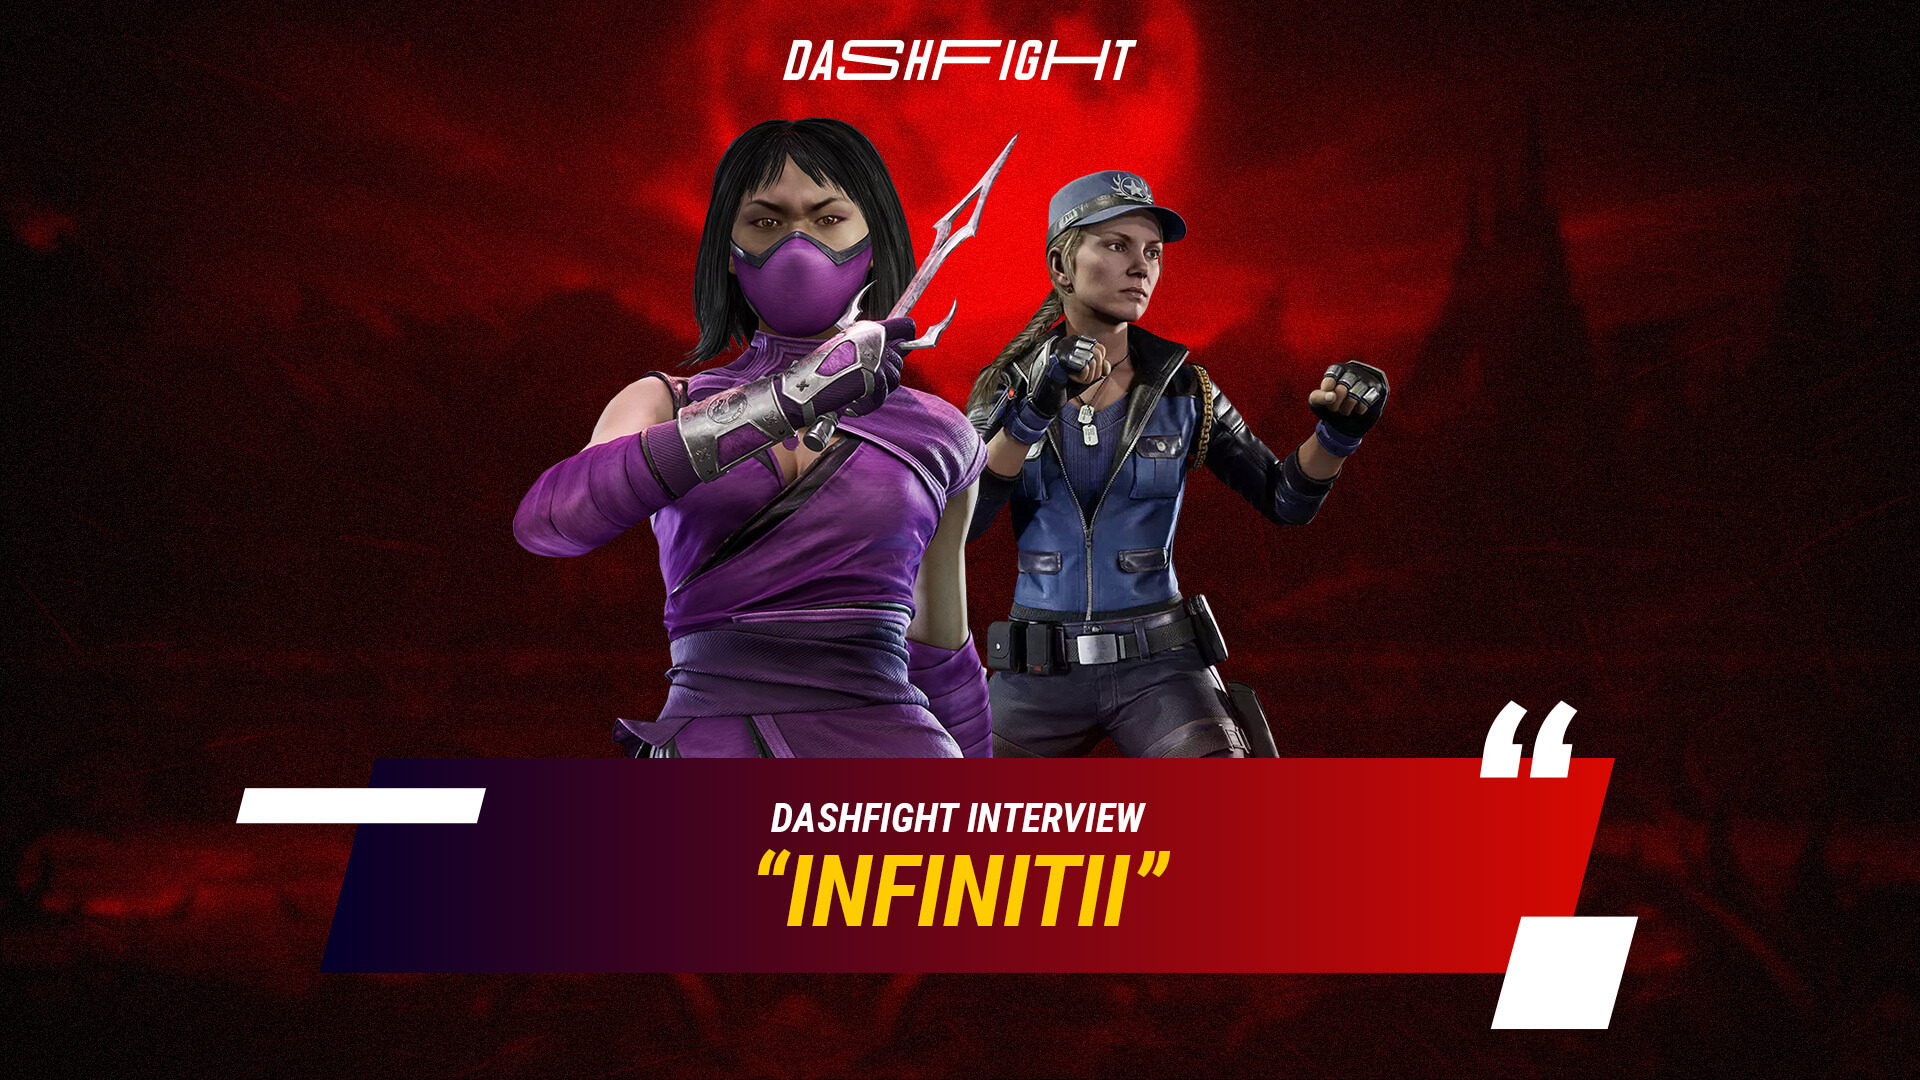 Infinitii: On Cosplay, FGC Closeness, and MK11